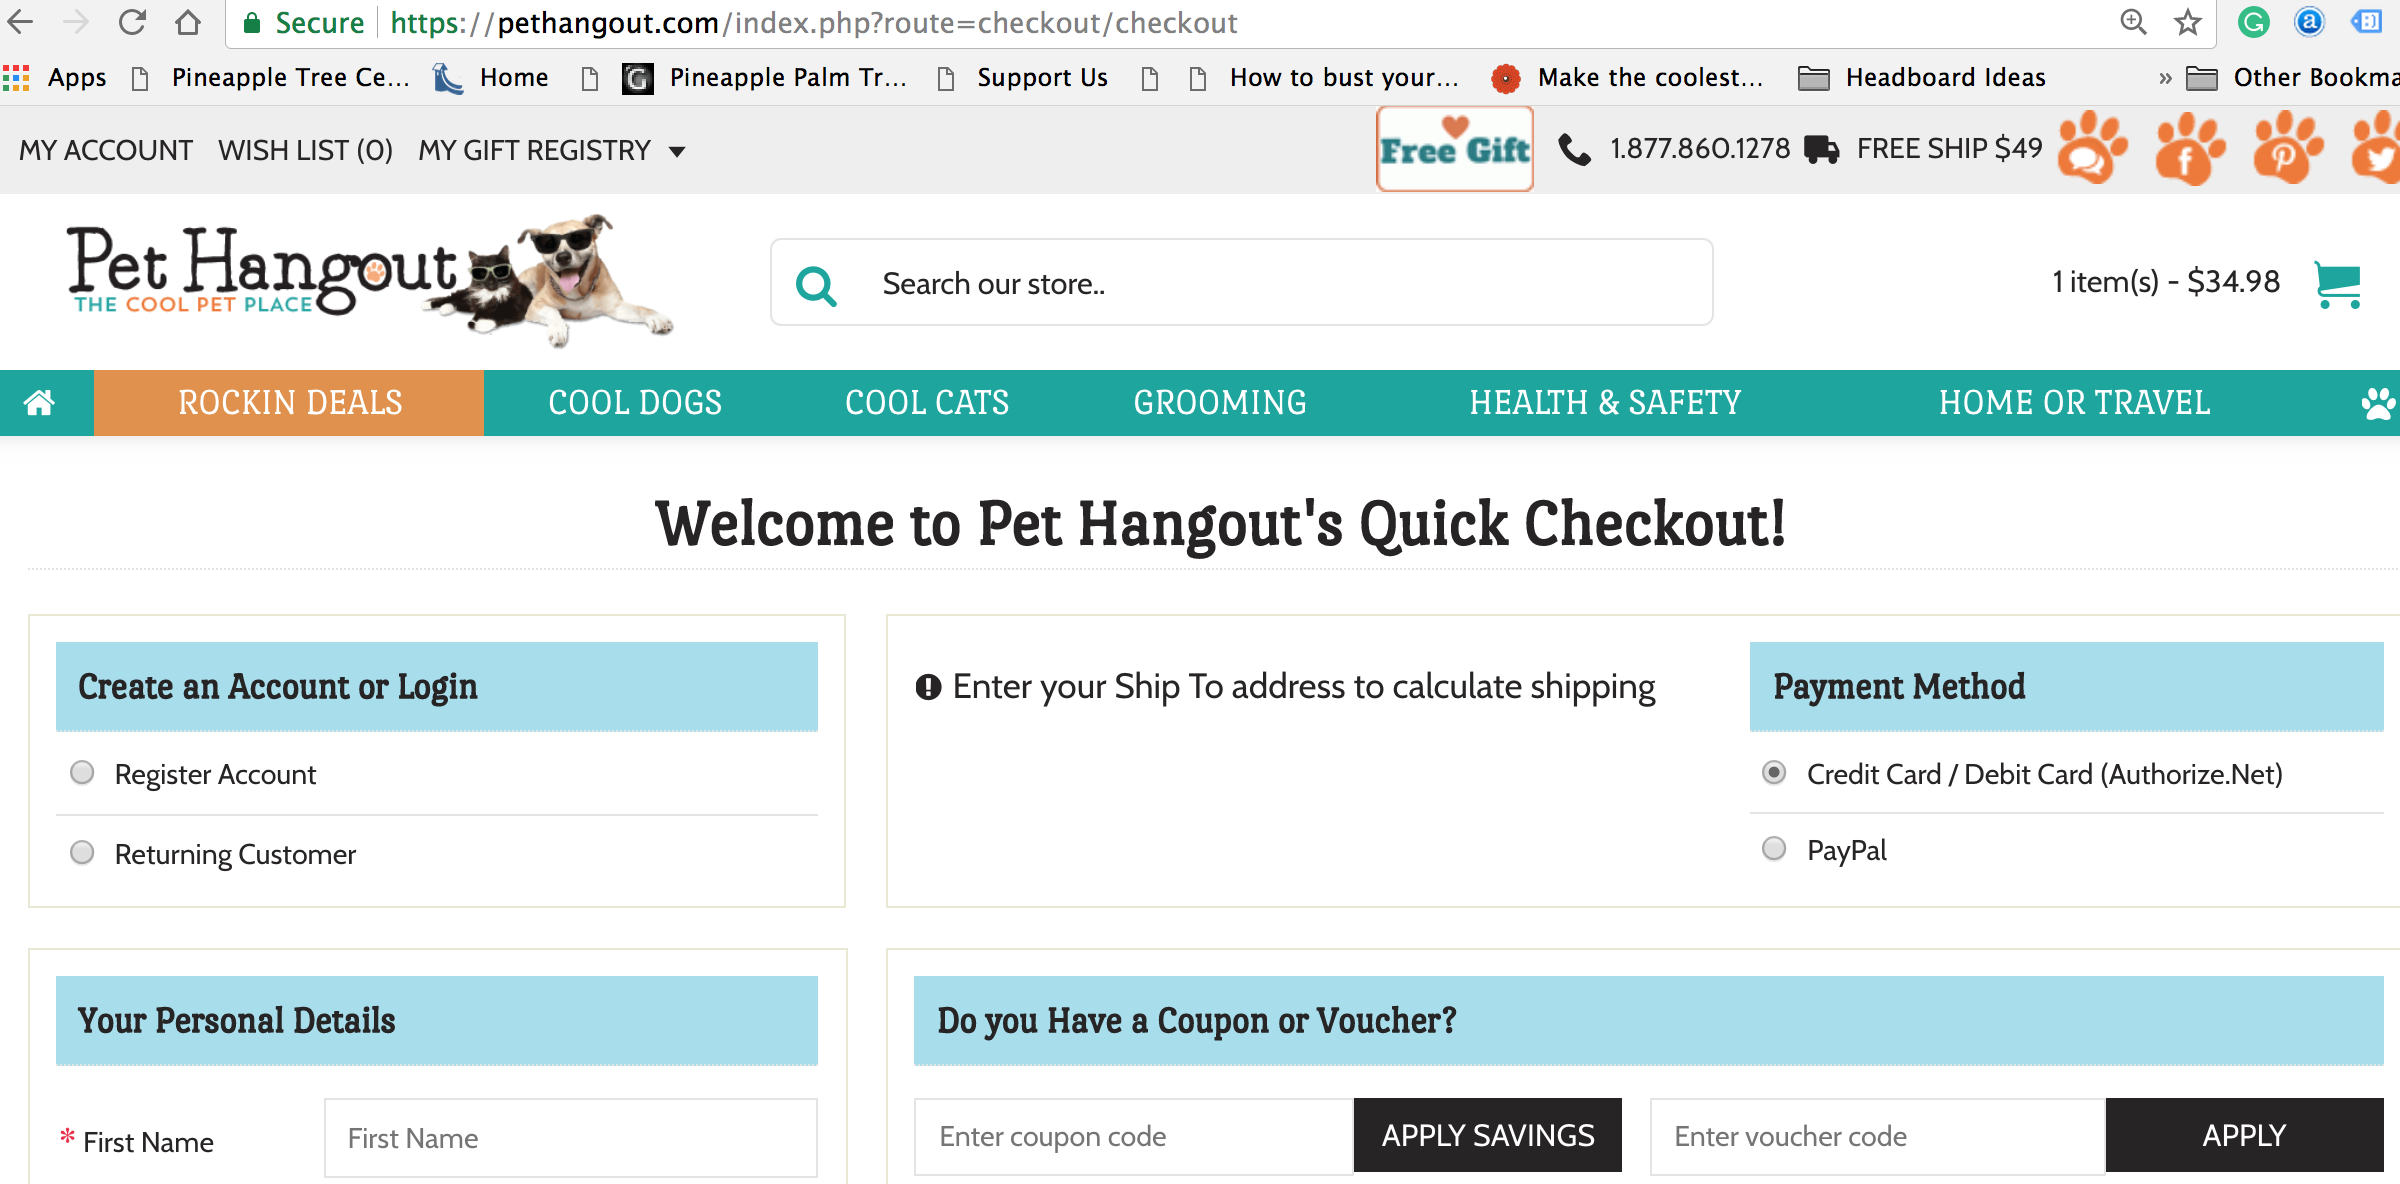 click checkout to see Pet hangout's quick checkout